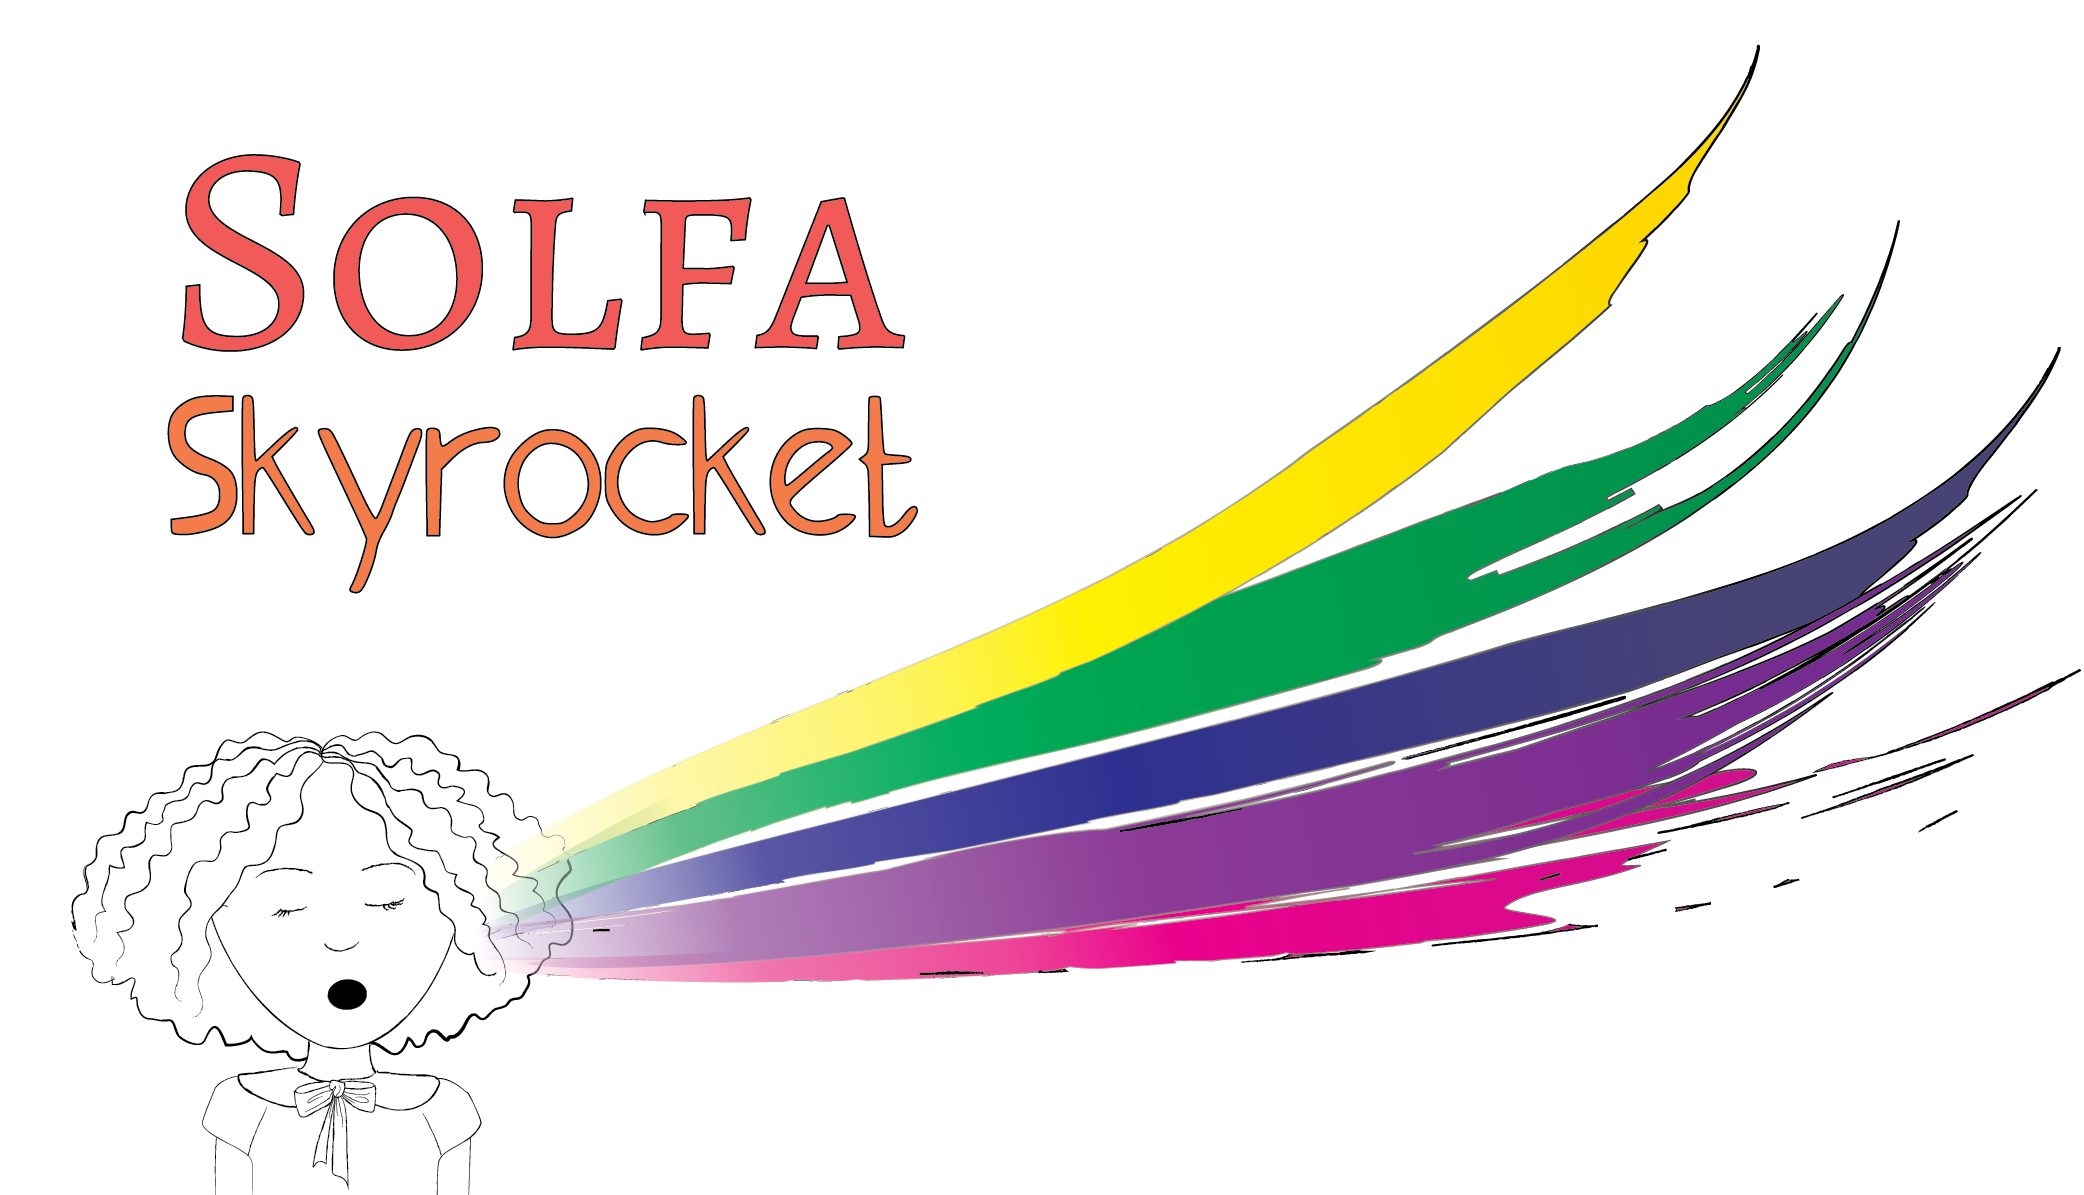 Solfa skyrocket course from Vibrant Music Teaching